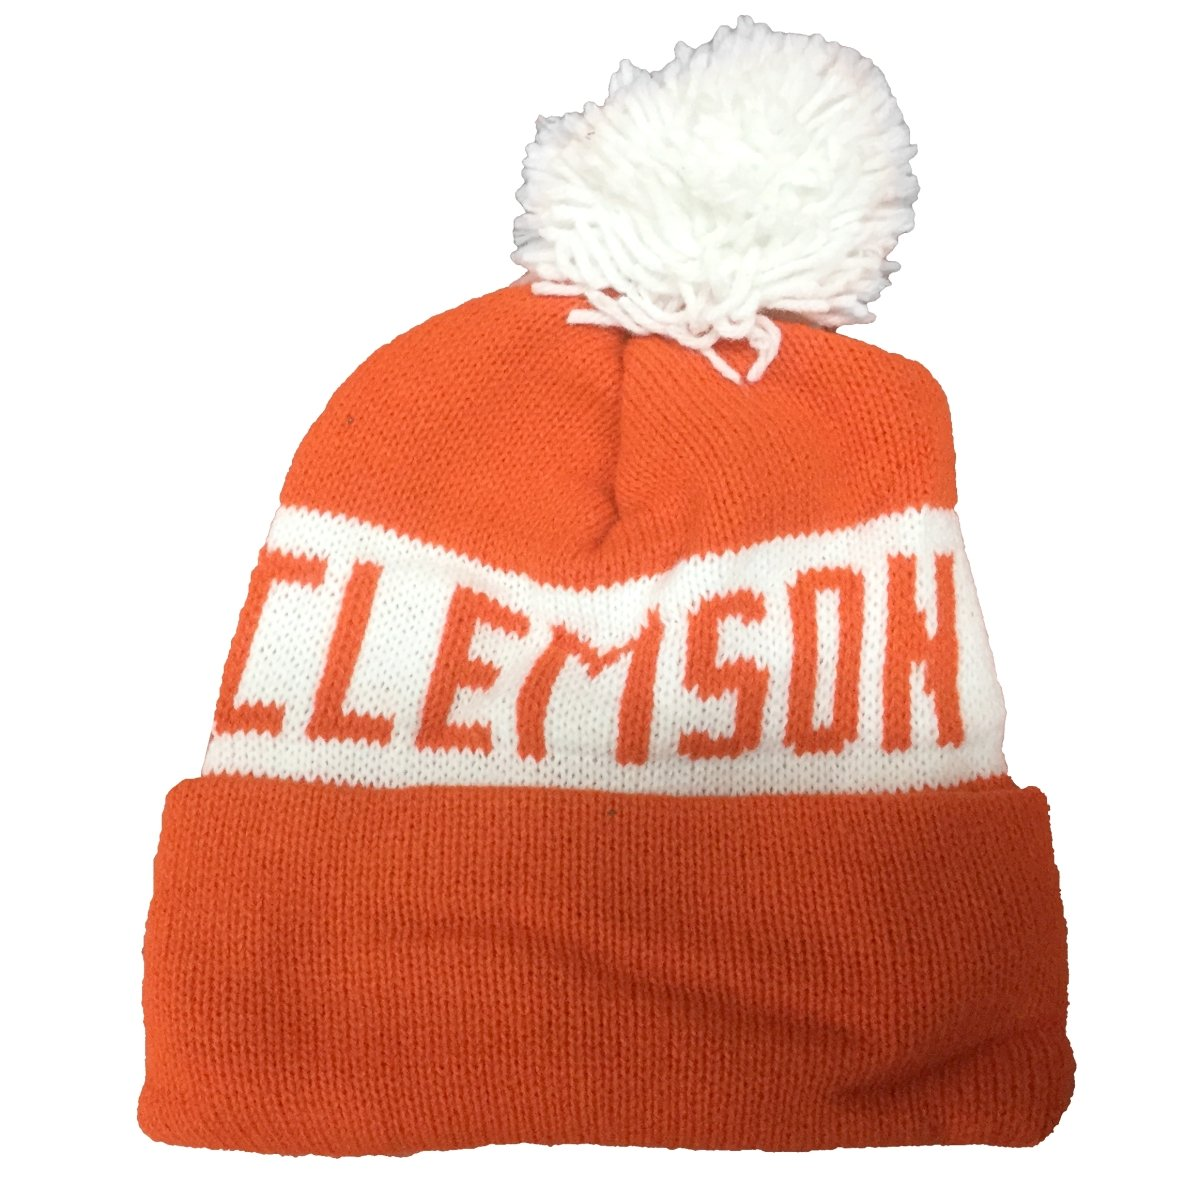 Stanley Knitting Clemson Tigers Knit Beanie With Cuff and Pom - Mr. Knickerbocker